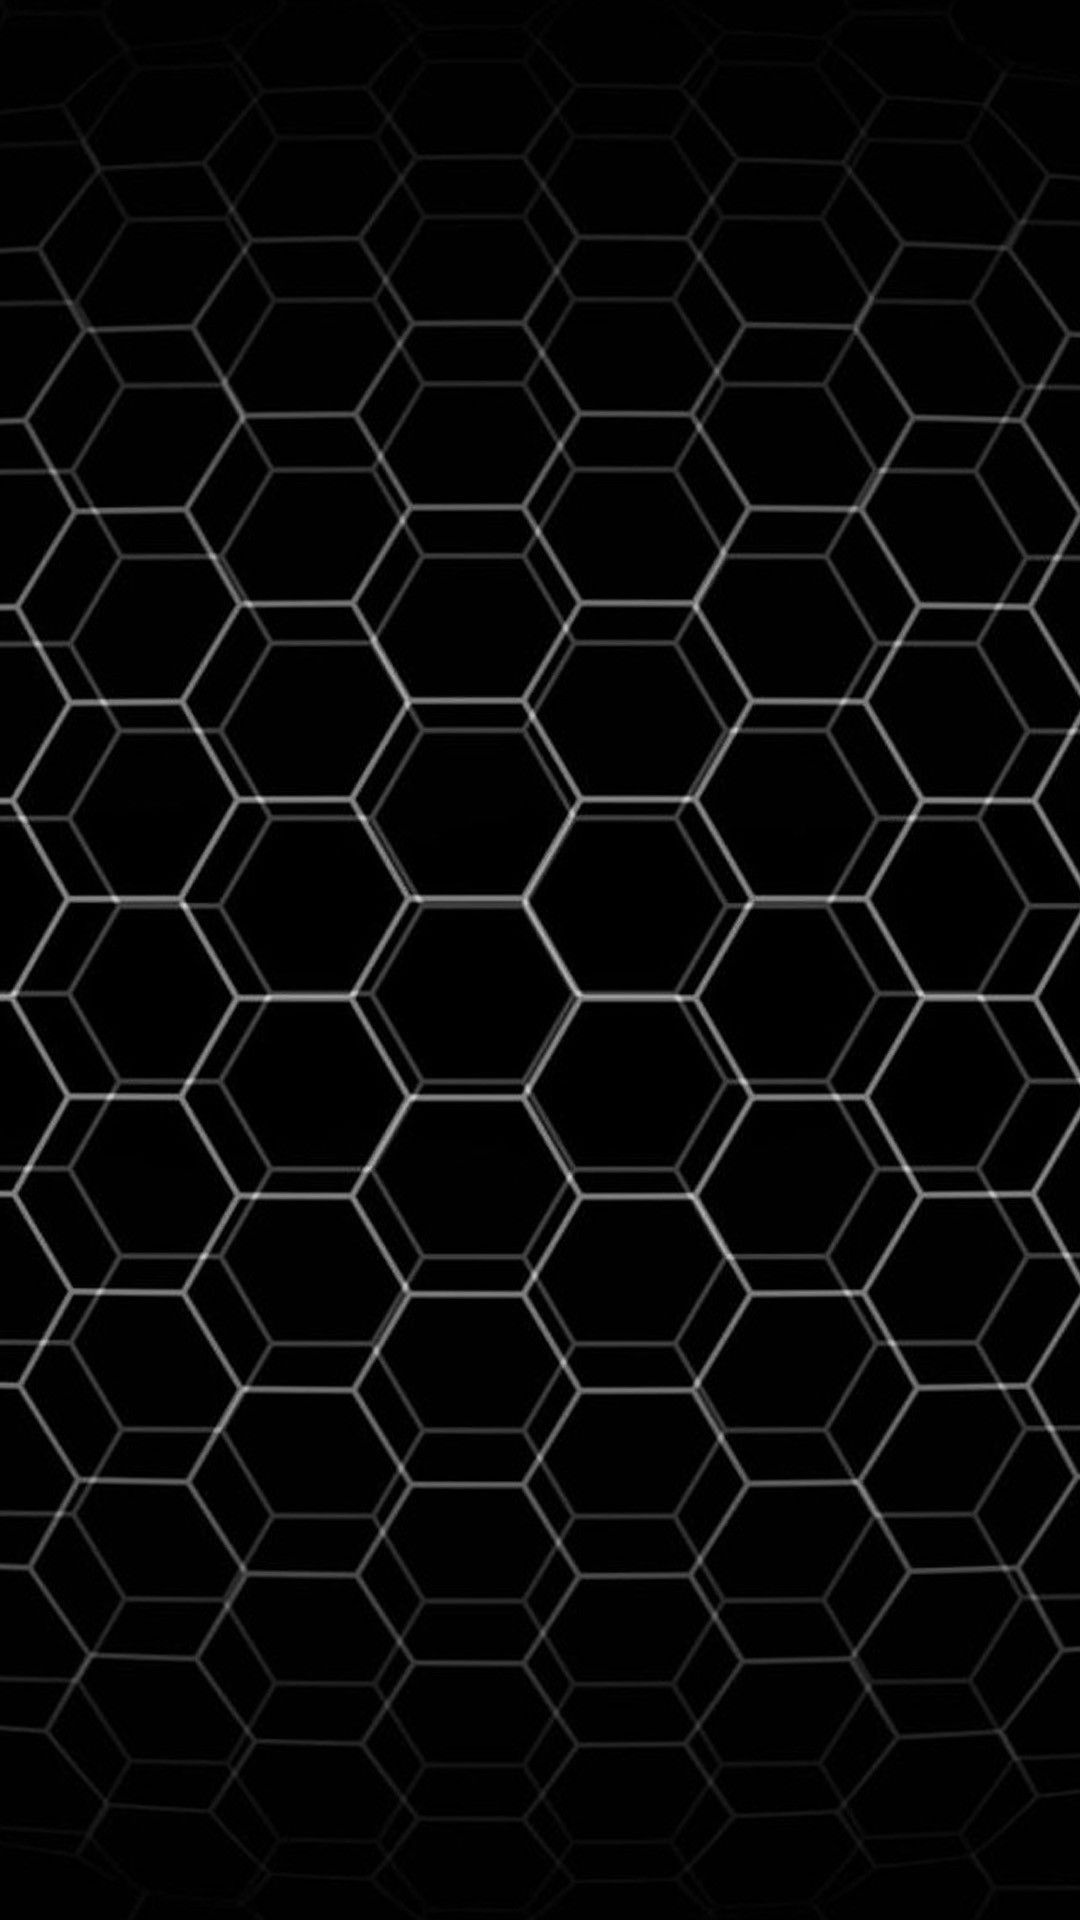 Phone Wallpaper HD Abstract Hexagon Wallpapers in 2018